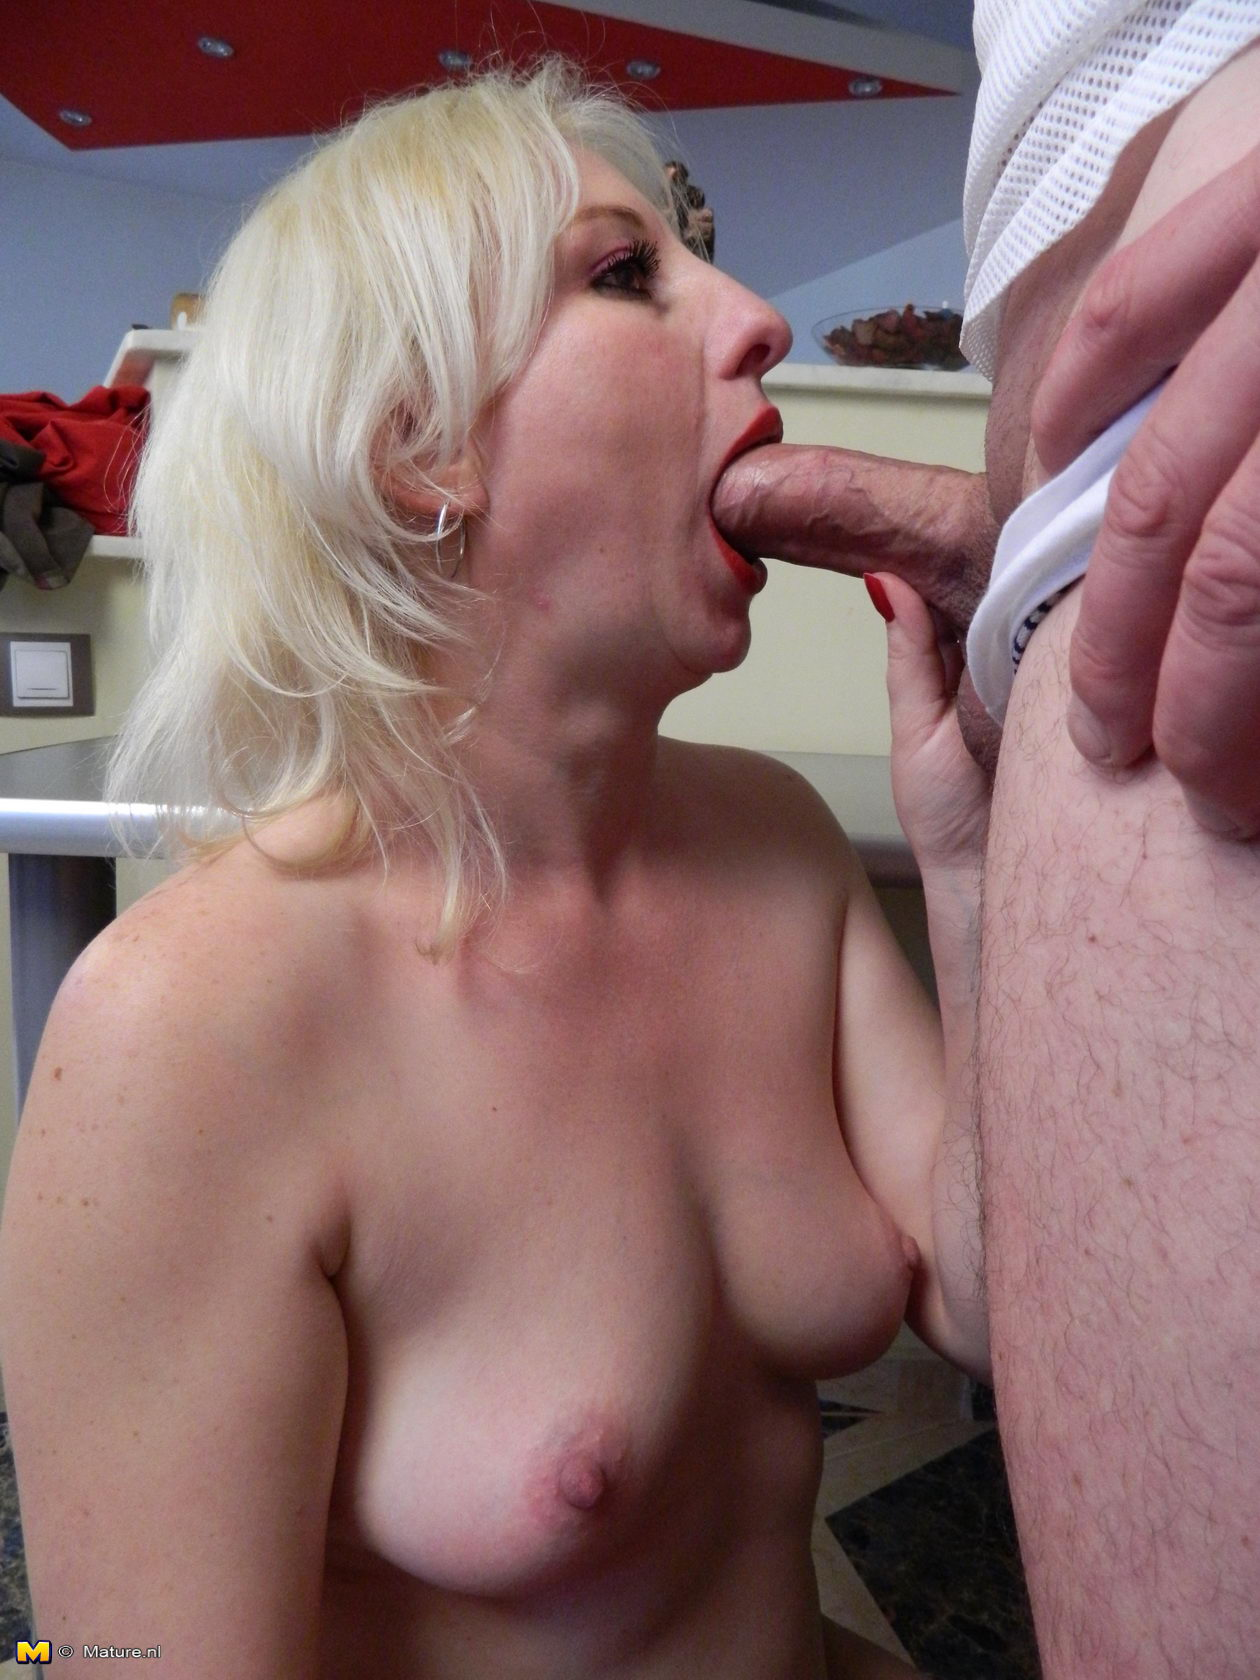 Hot milfs sucking cock